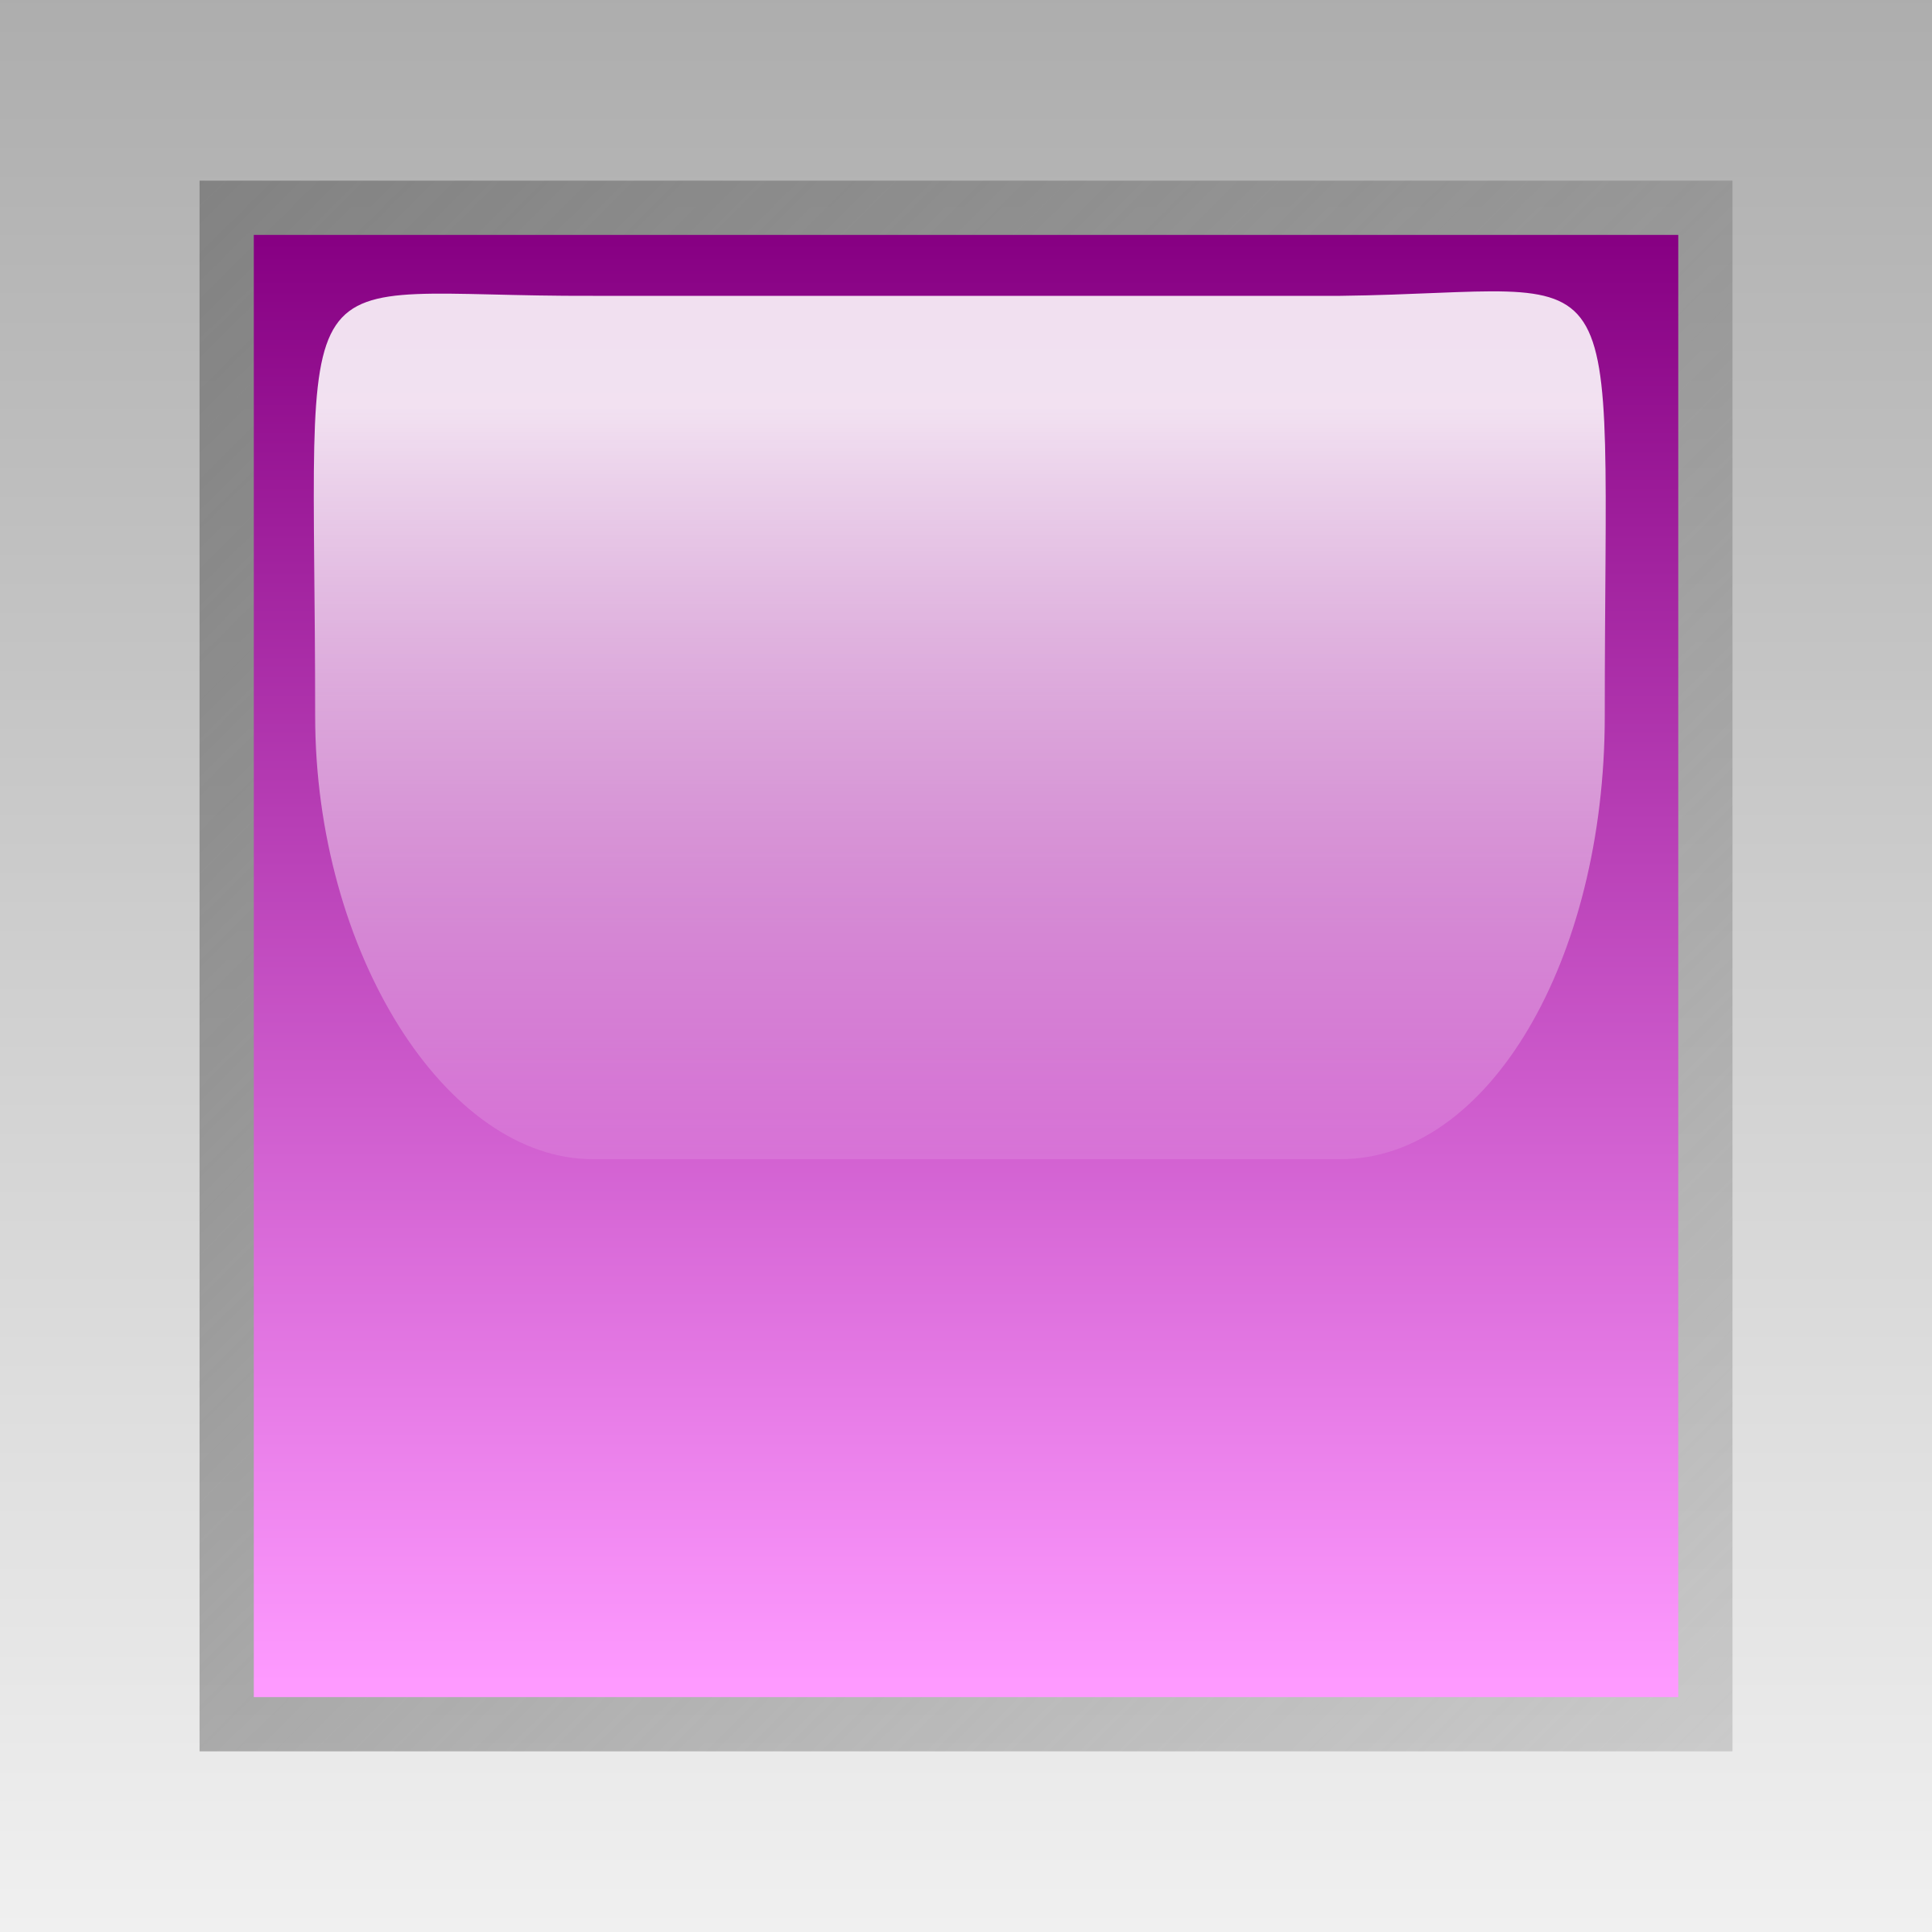 led square purpe by jean_victor_balin